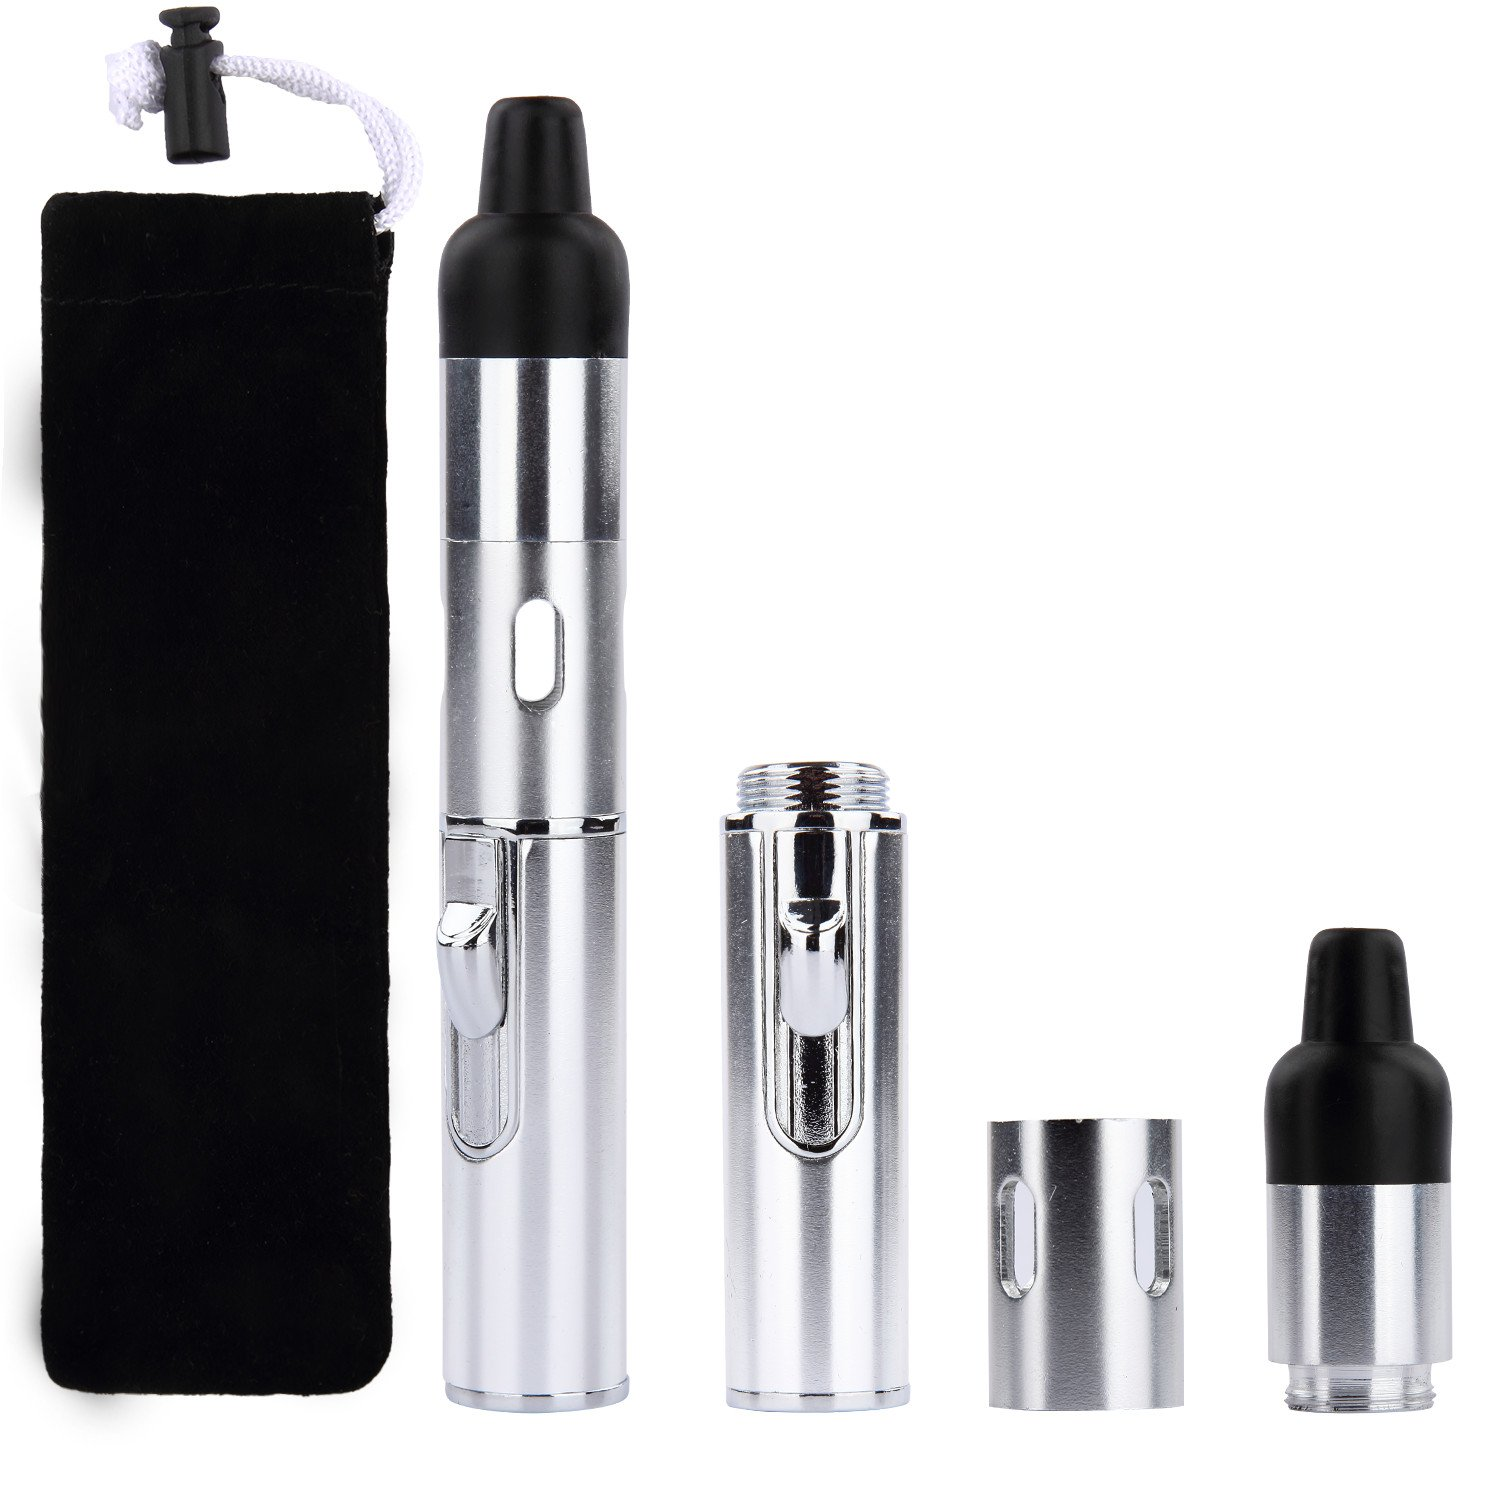 Cheap herbal vaporizers - Discoball Aluminum Alloy Dry Herb Vaporizer Tank Refillable Stainless Steel Shisha Pipe Pen Click N Vape Silver Amazon Co Uk Health Personal Care